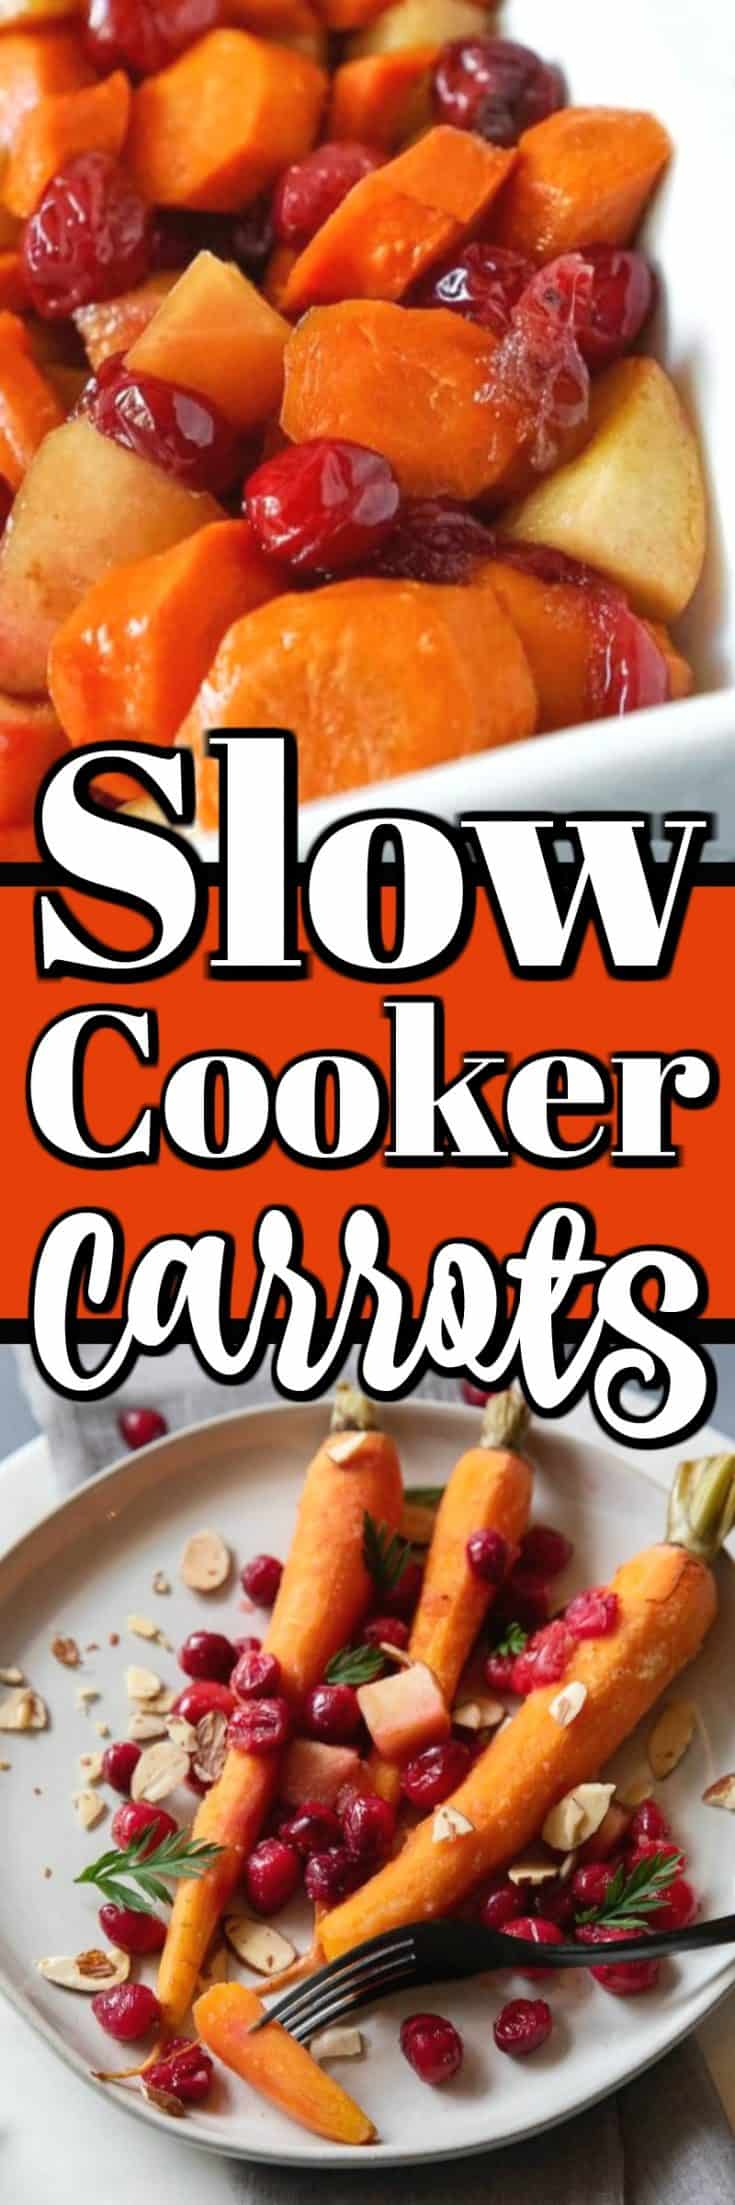 Cranberry Apple Slow Cooker Carrots Recipe is perfect for the holidays and is an easy side dish that frees up that frees up the oven. #slowcooker #carrots